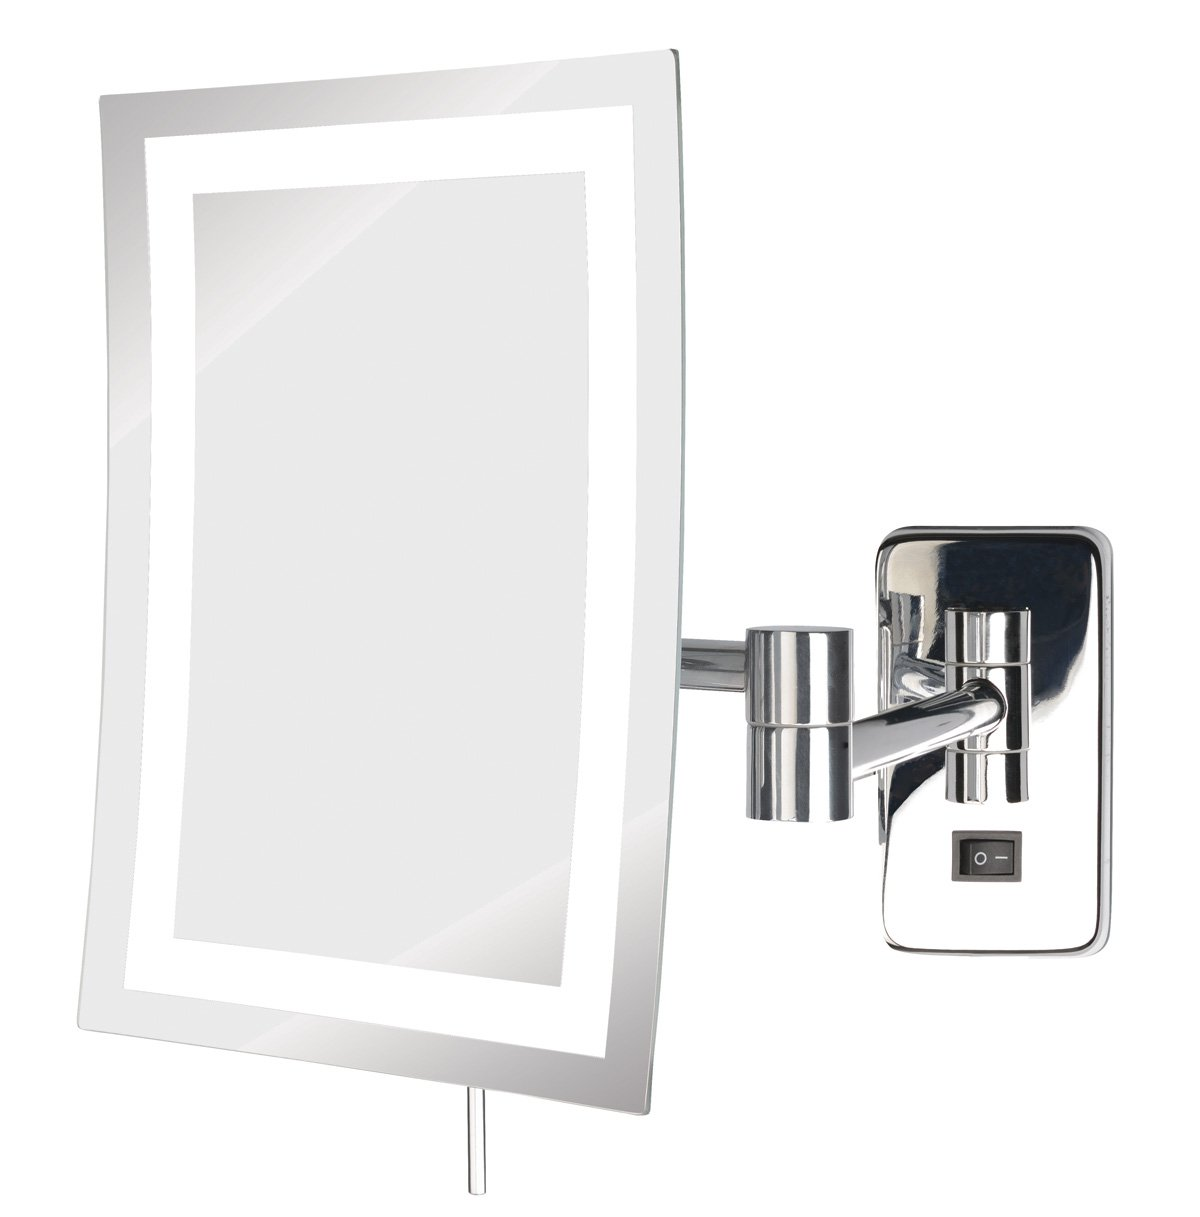 Jerdon JRT710CL LED Lighted Wall Mount Rectangular Makeup Mirror, Chrome Finish, 6.5 x 9